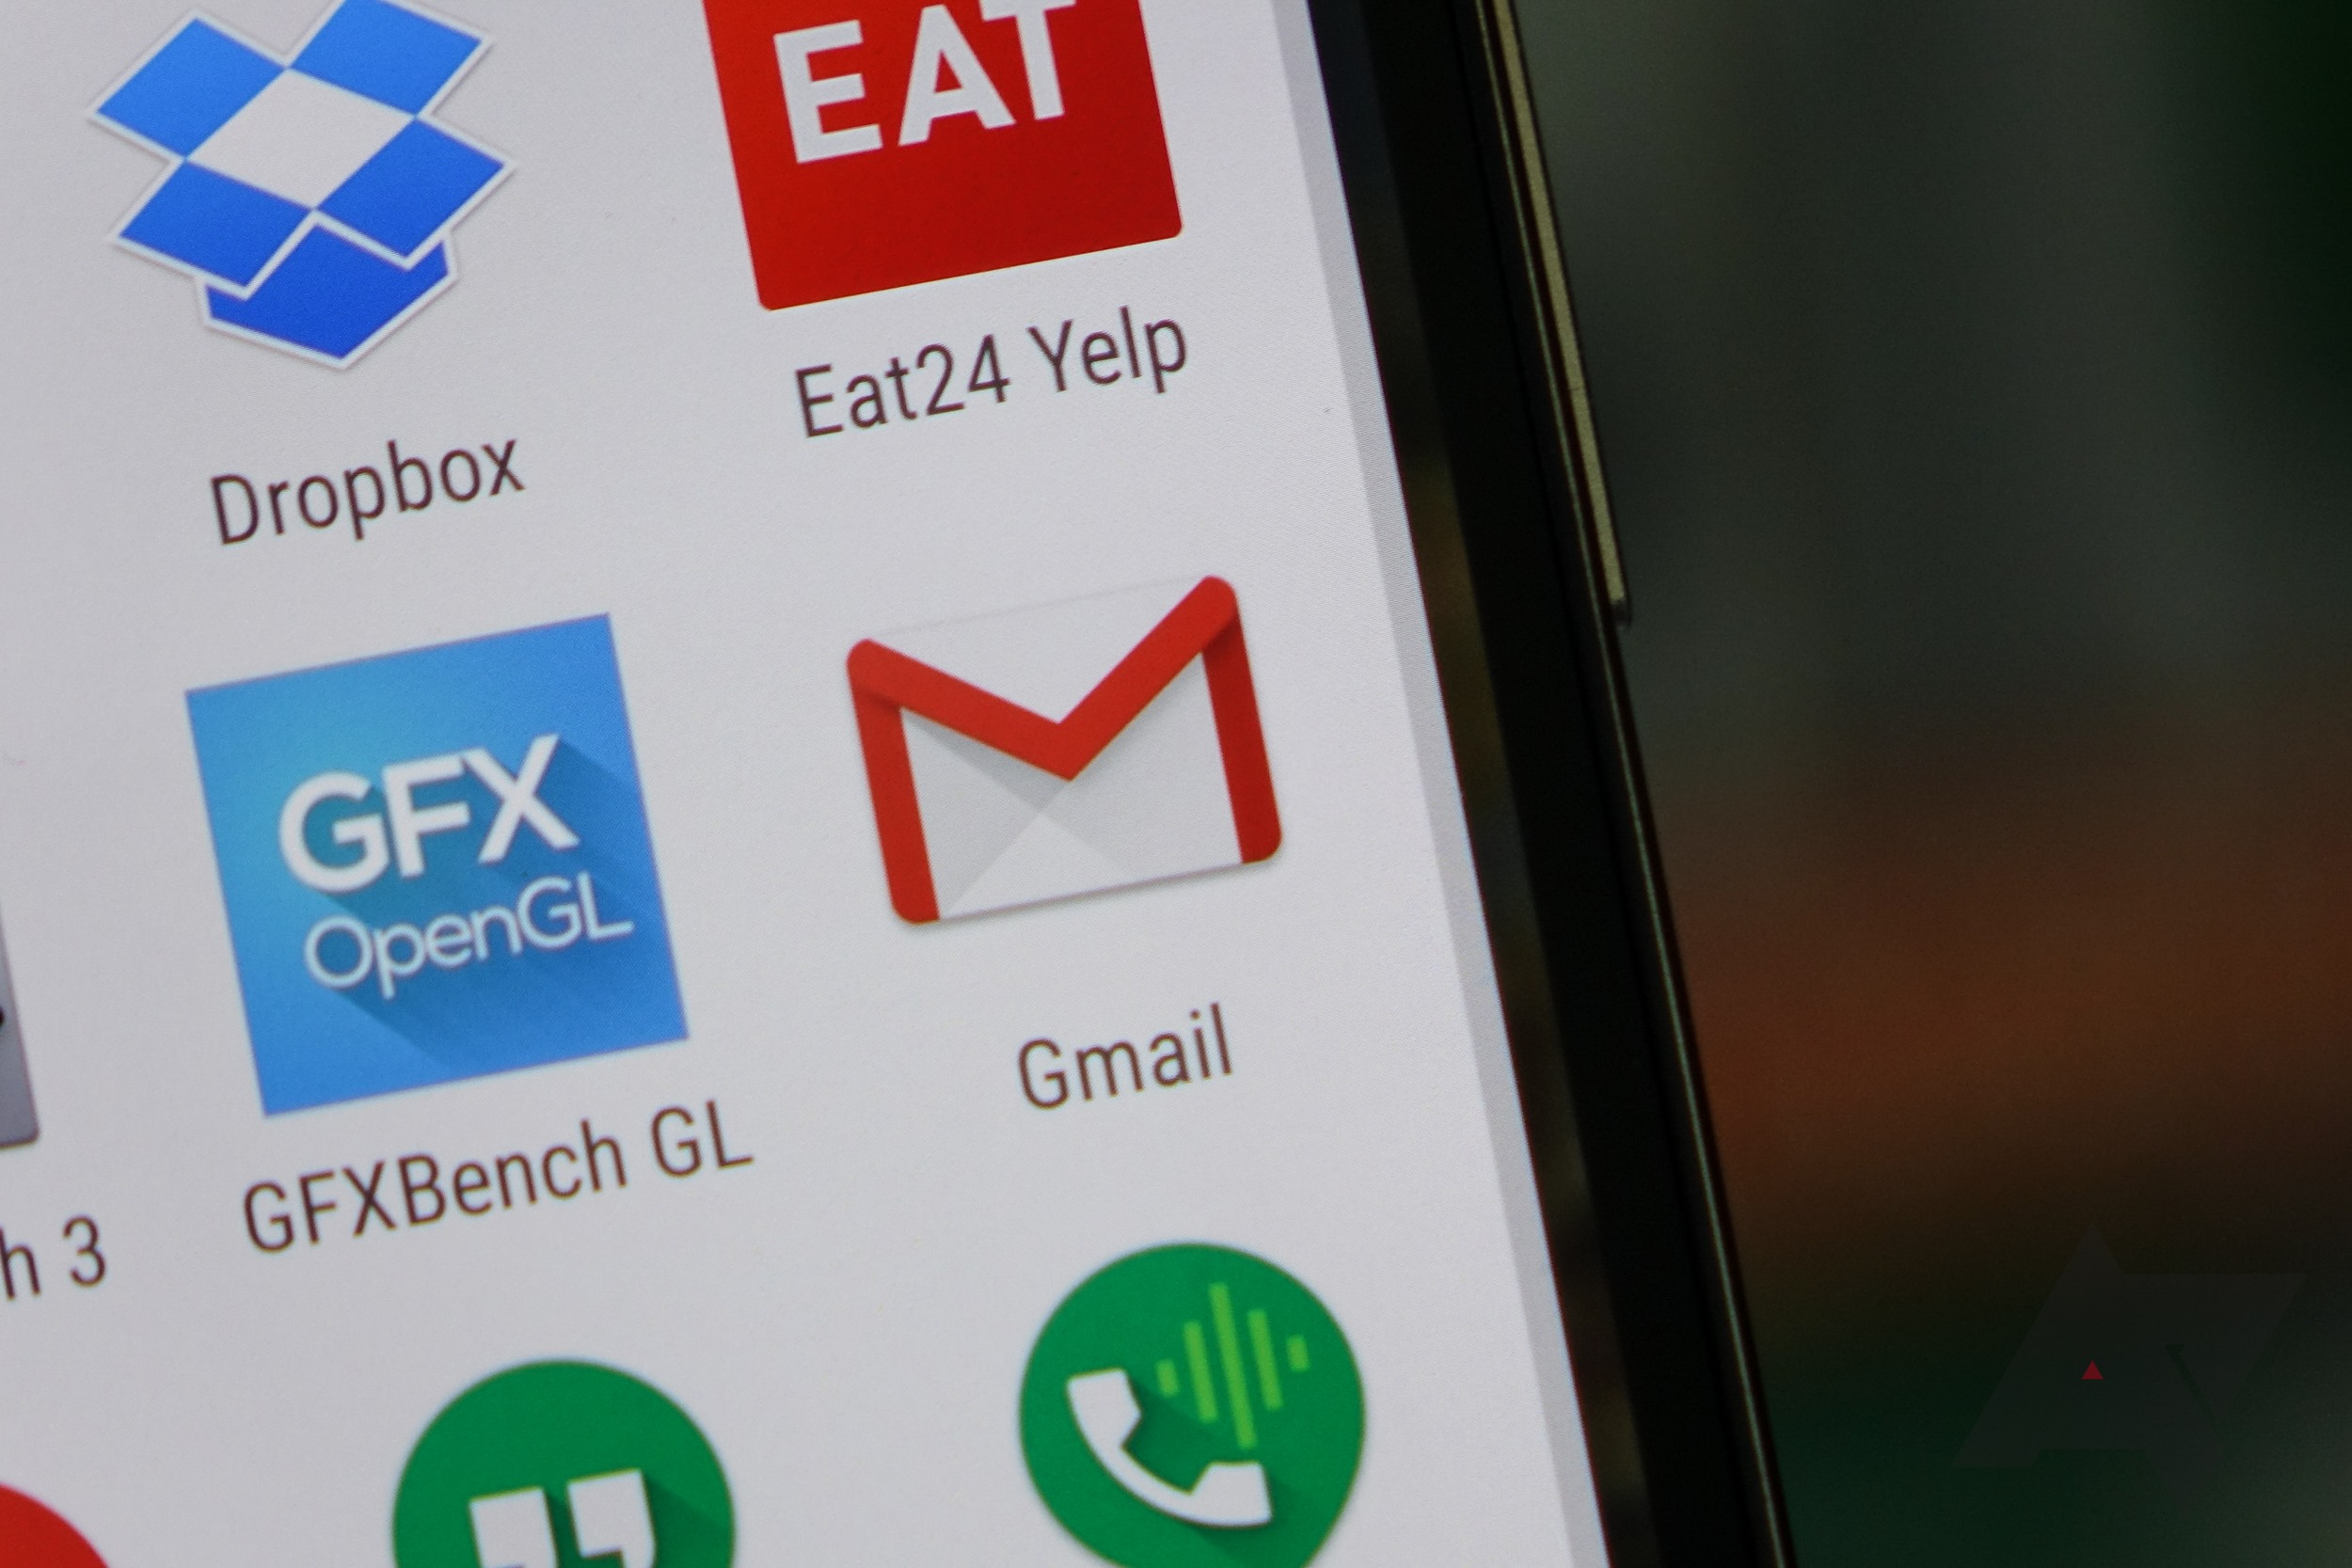 Gmail Hits 1 Billion Monthly Active Users, According To